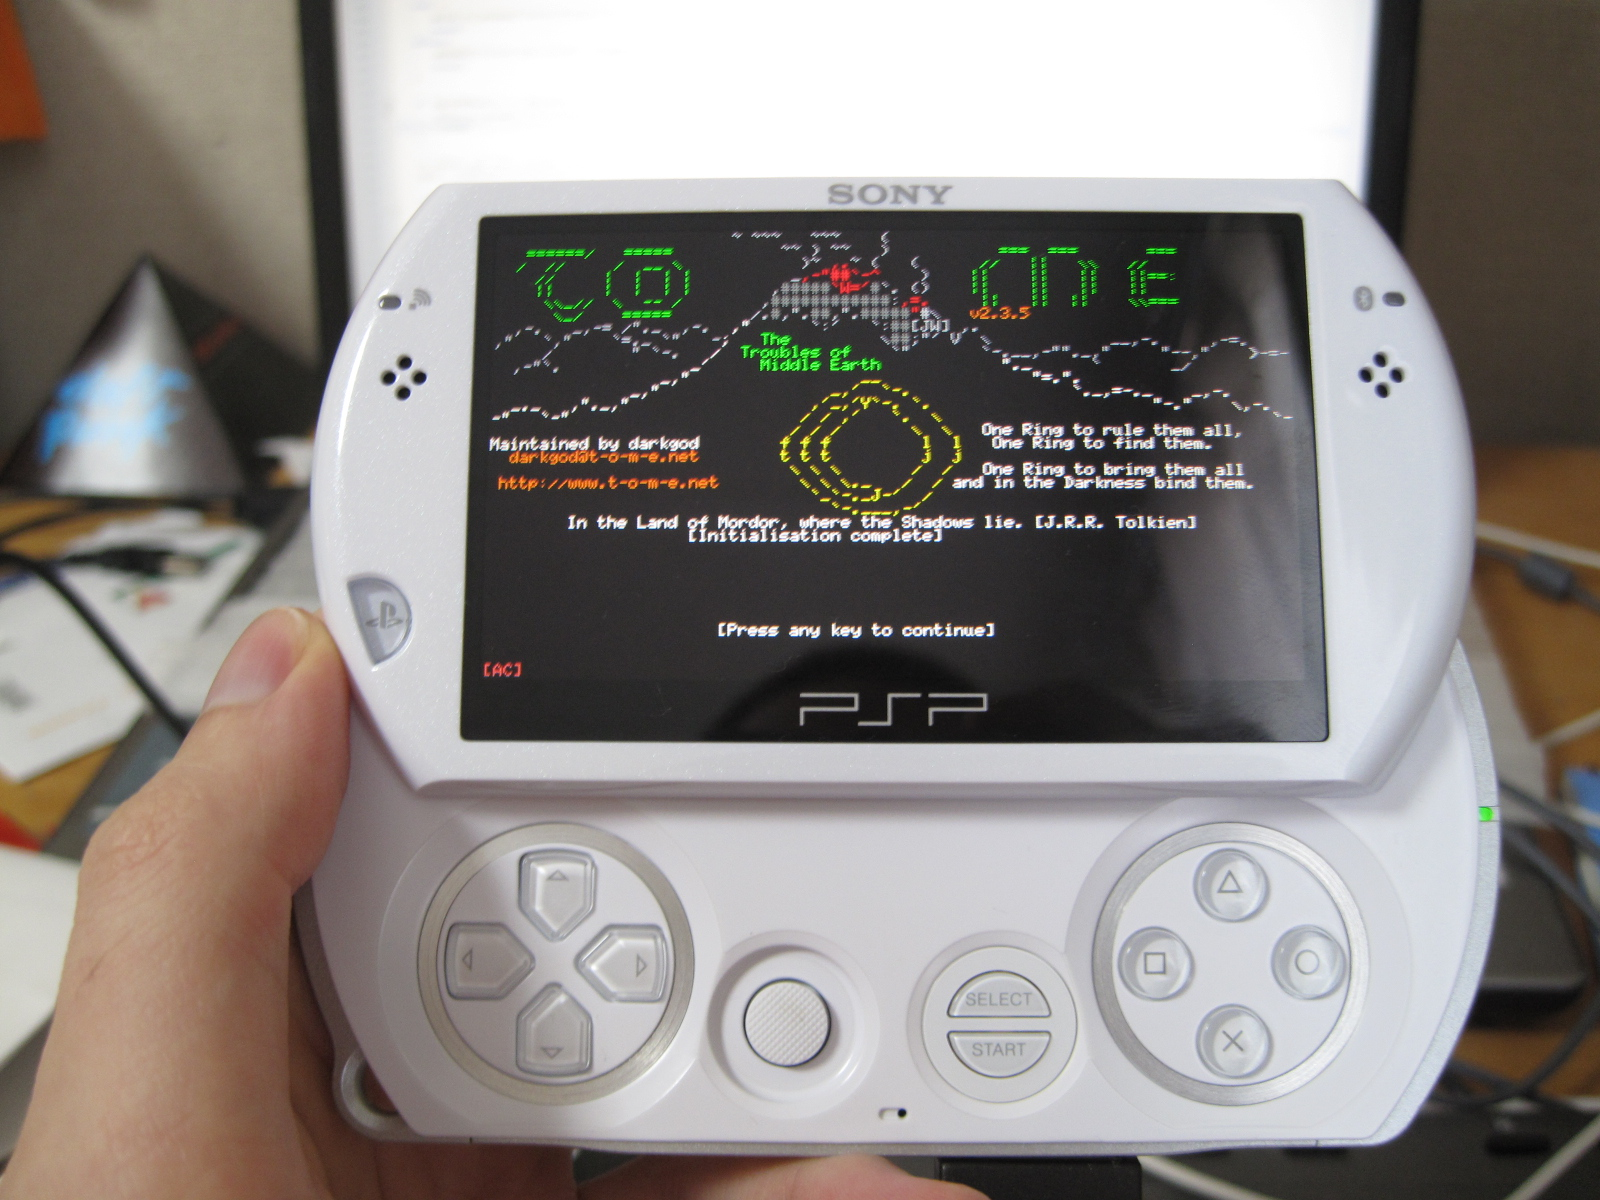 HBL Update: T.O.M.E. Patch For The PSP Go With HBL Revision 50